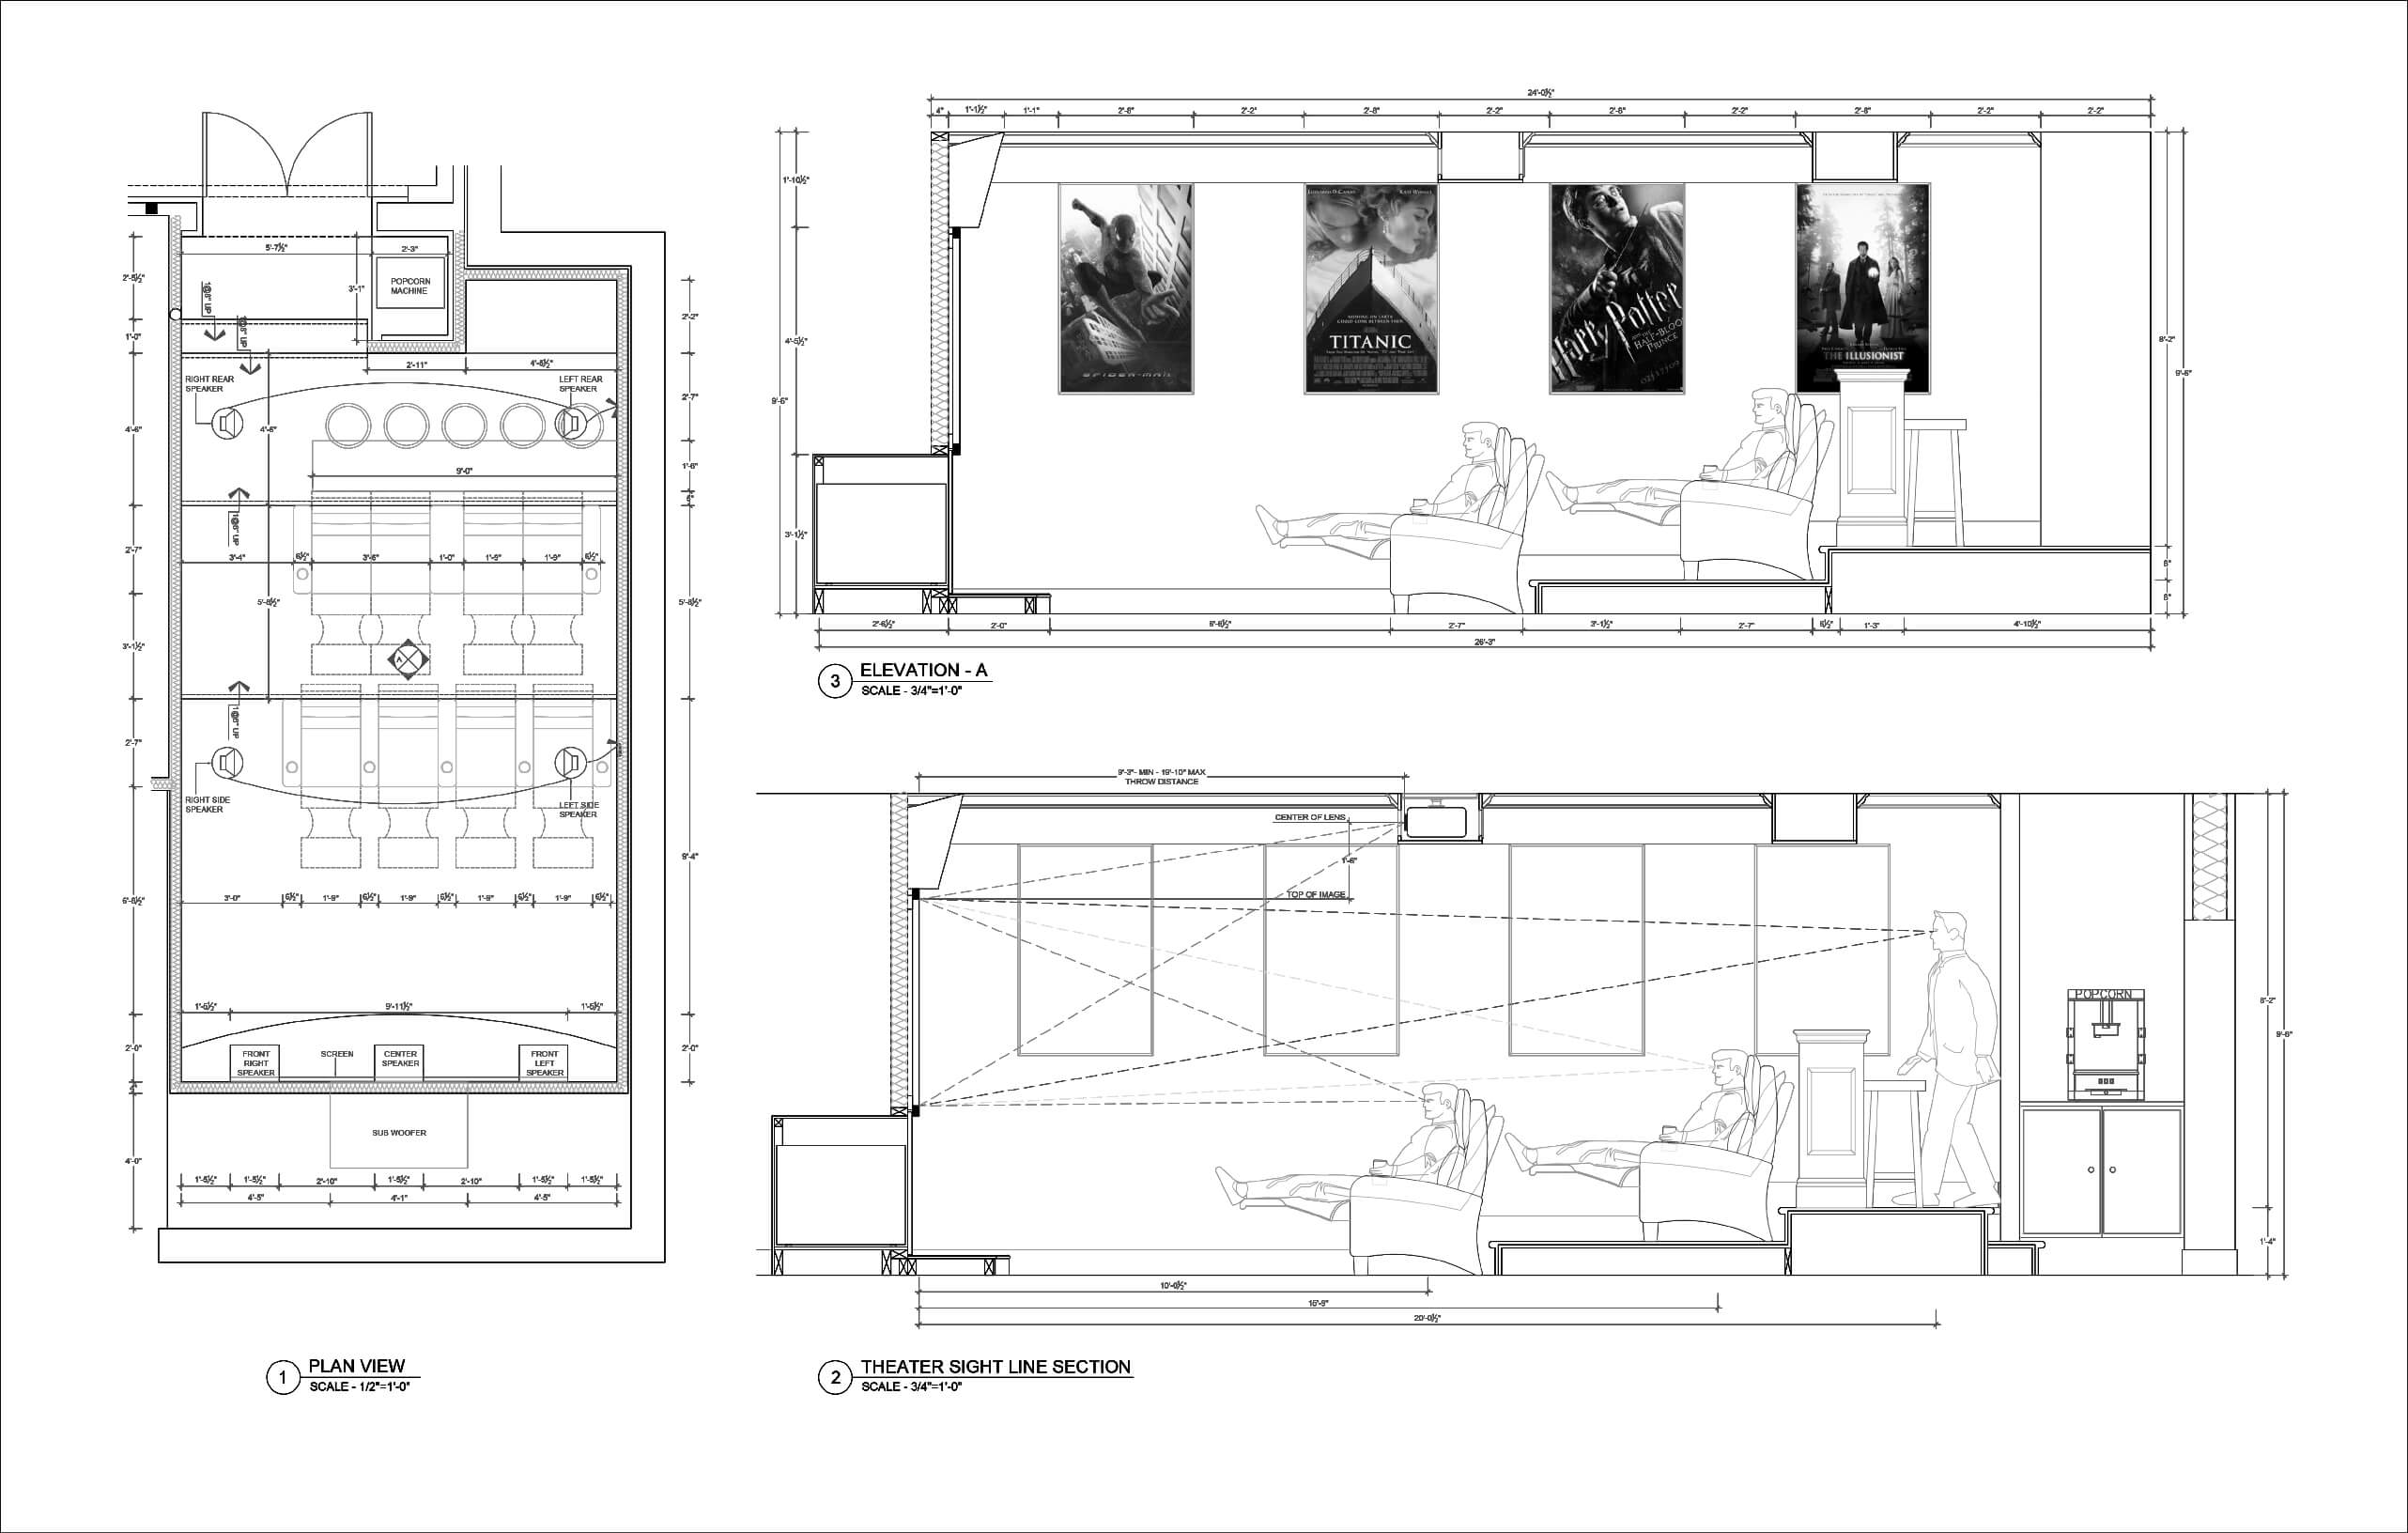 Residential Theater Drawings